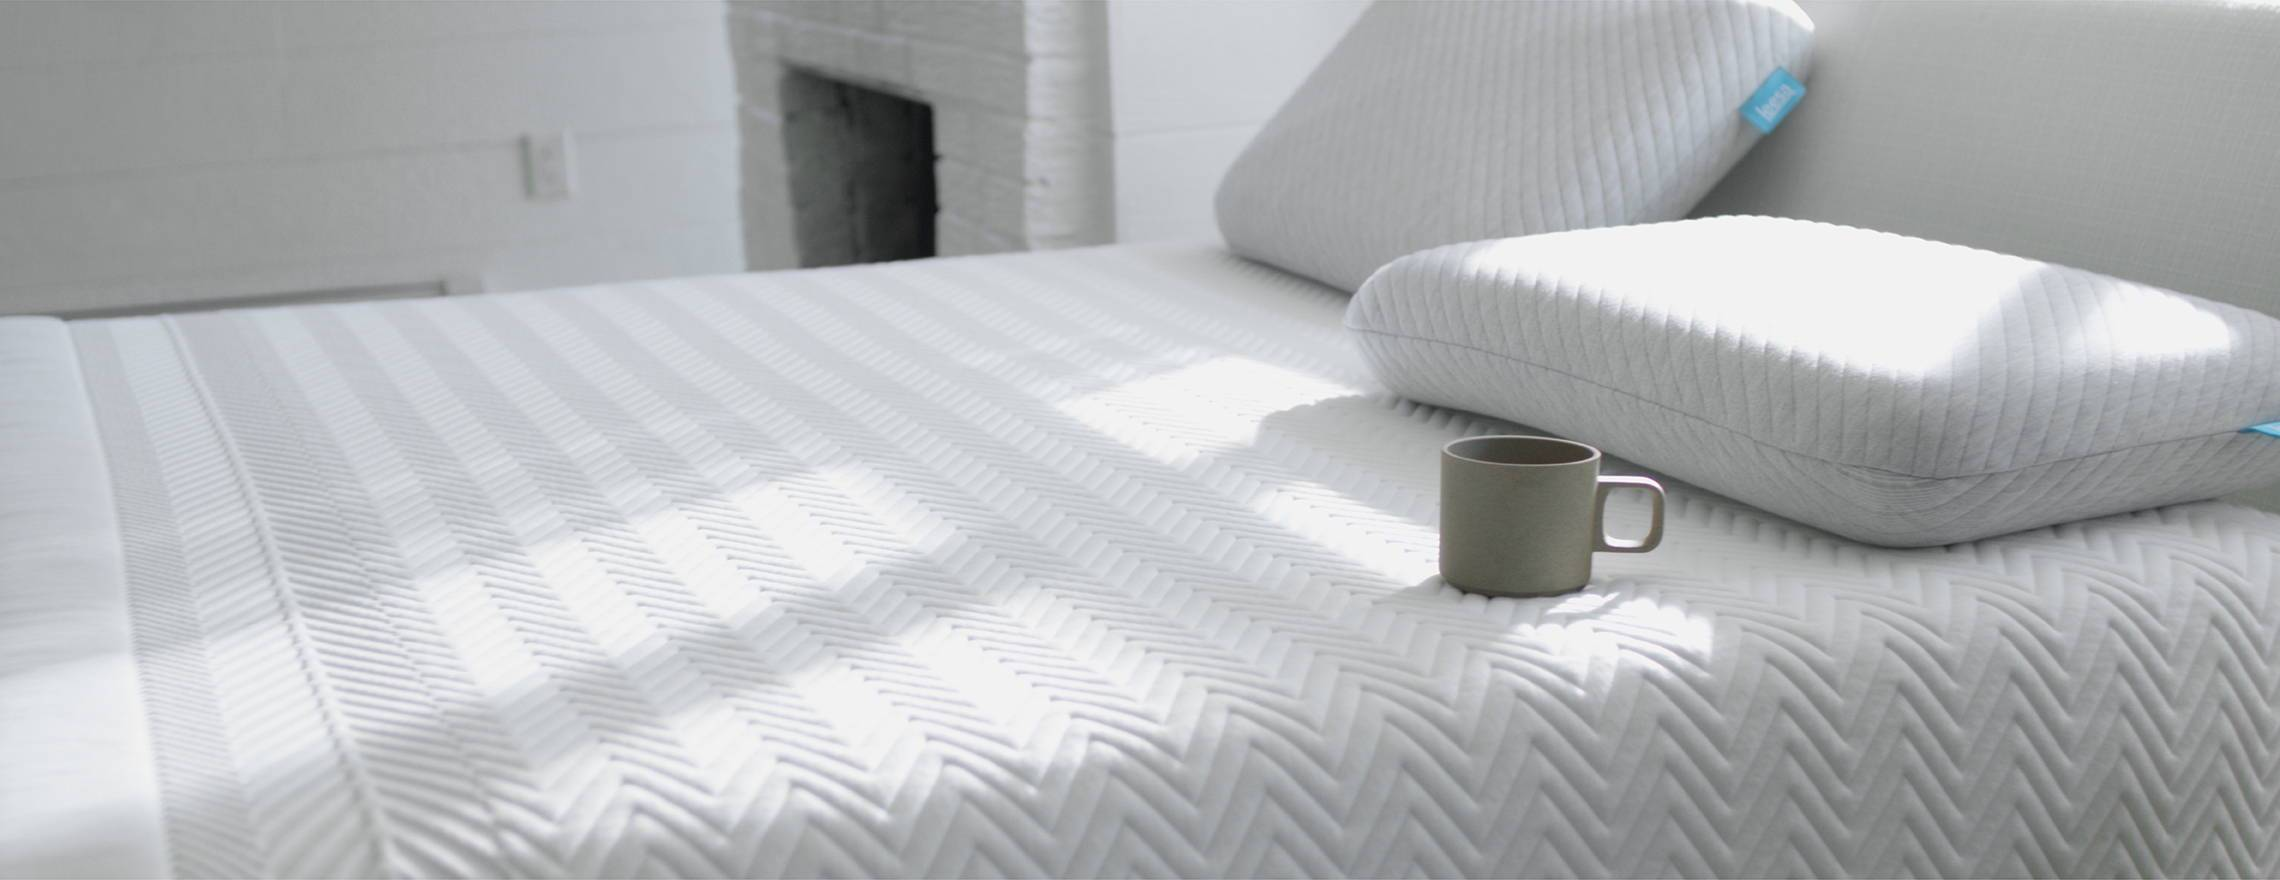 coffee_cup_on_a_white_leesa_mattress_with_a_leesa_pillow